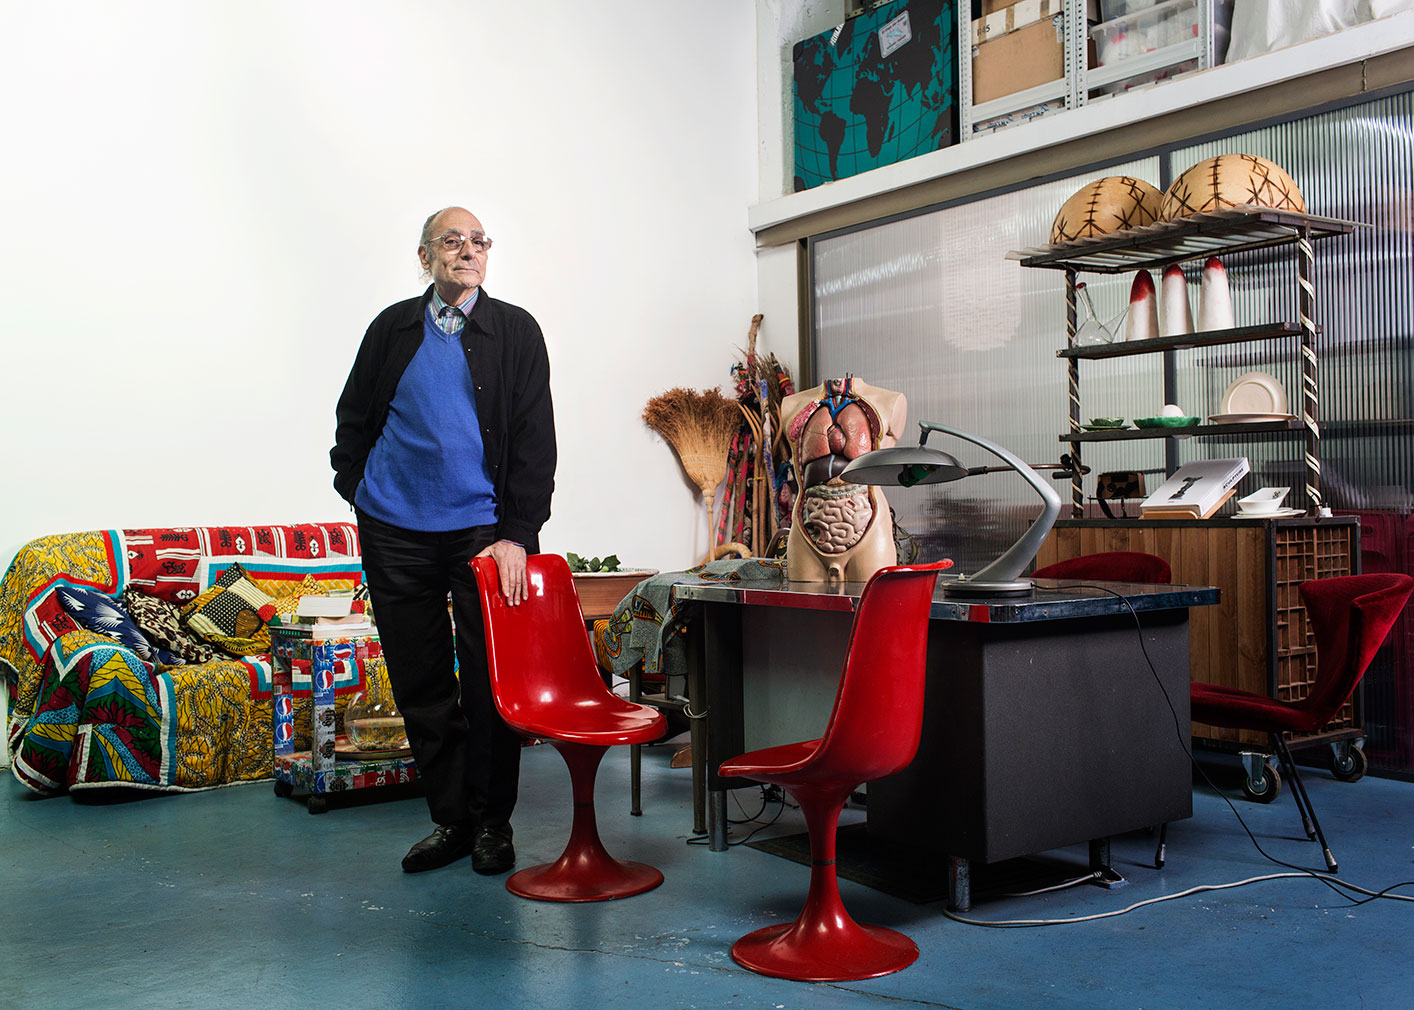 Antoni Miralda in his Barcelona studio and home